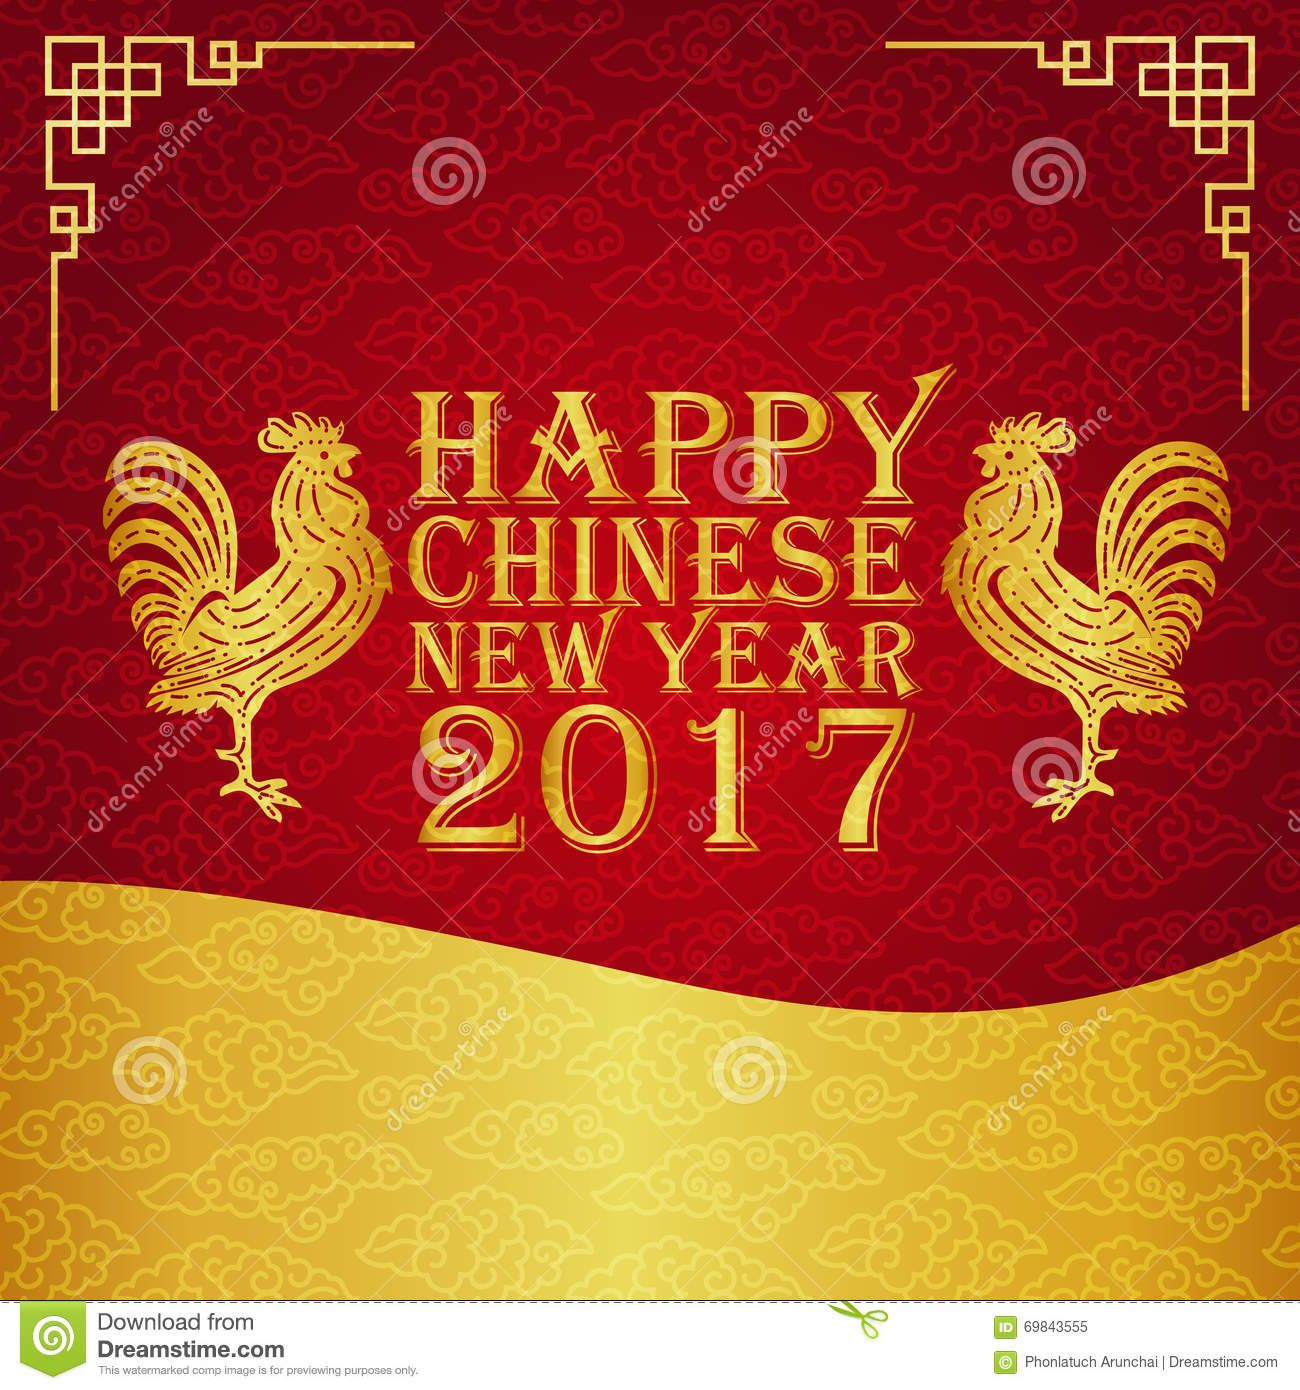 Happy Chinese New Year 2017 The Year Of Chicken LUNAR NEW YEAR